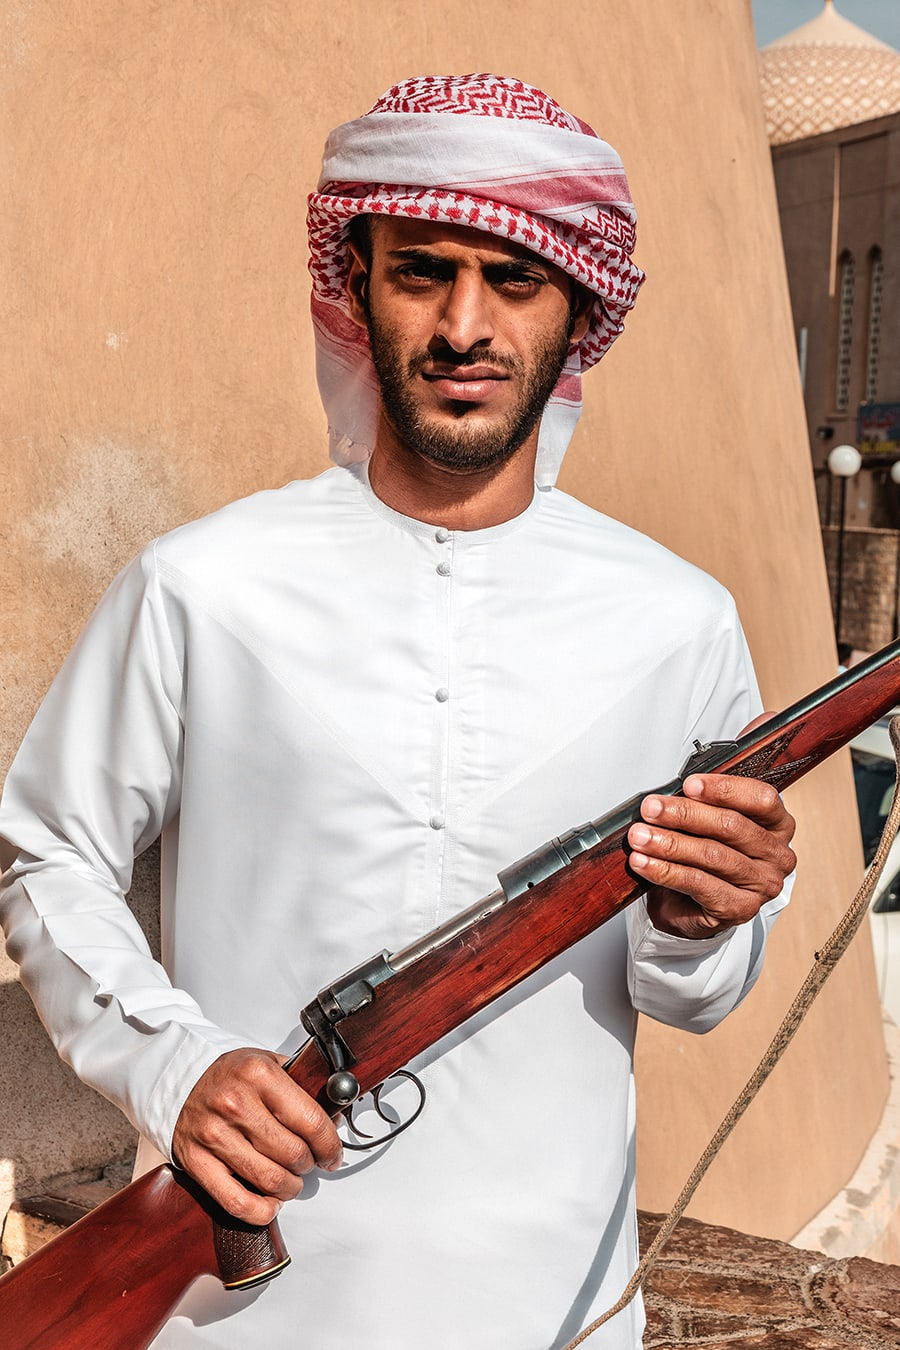 A man holding a riffle at the Niza Gun Market in Oman.